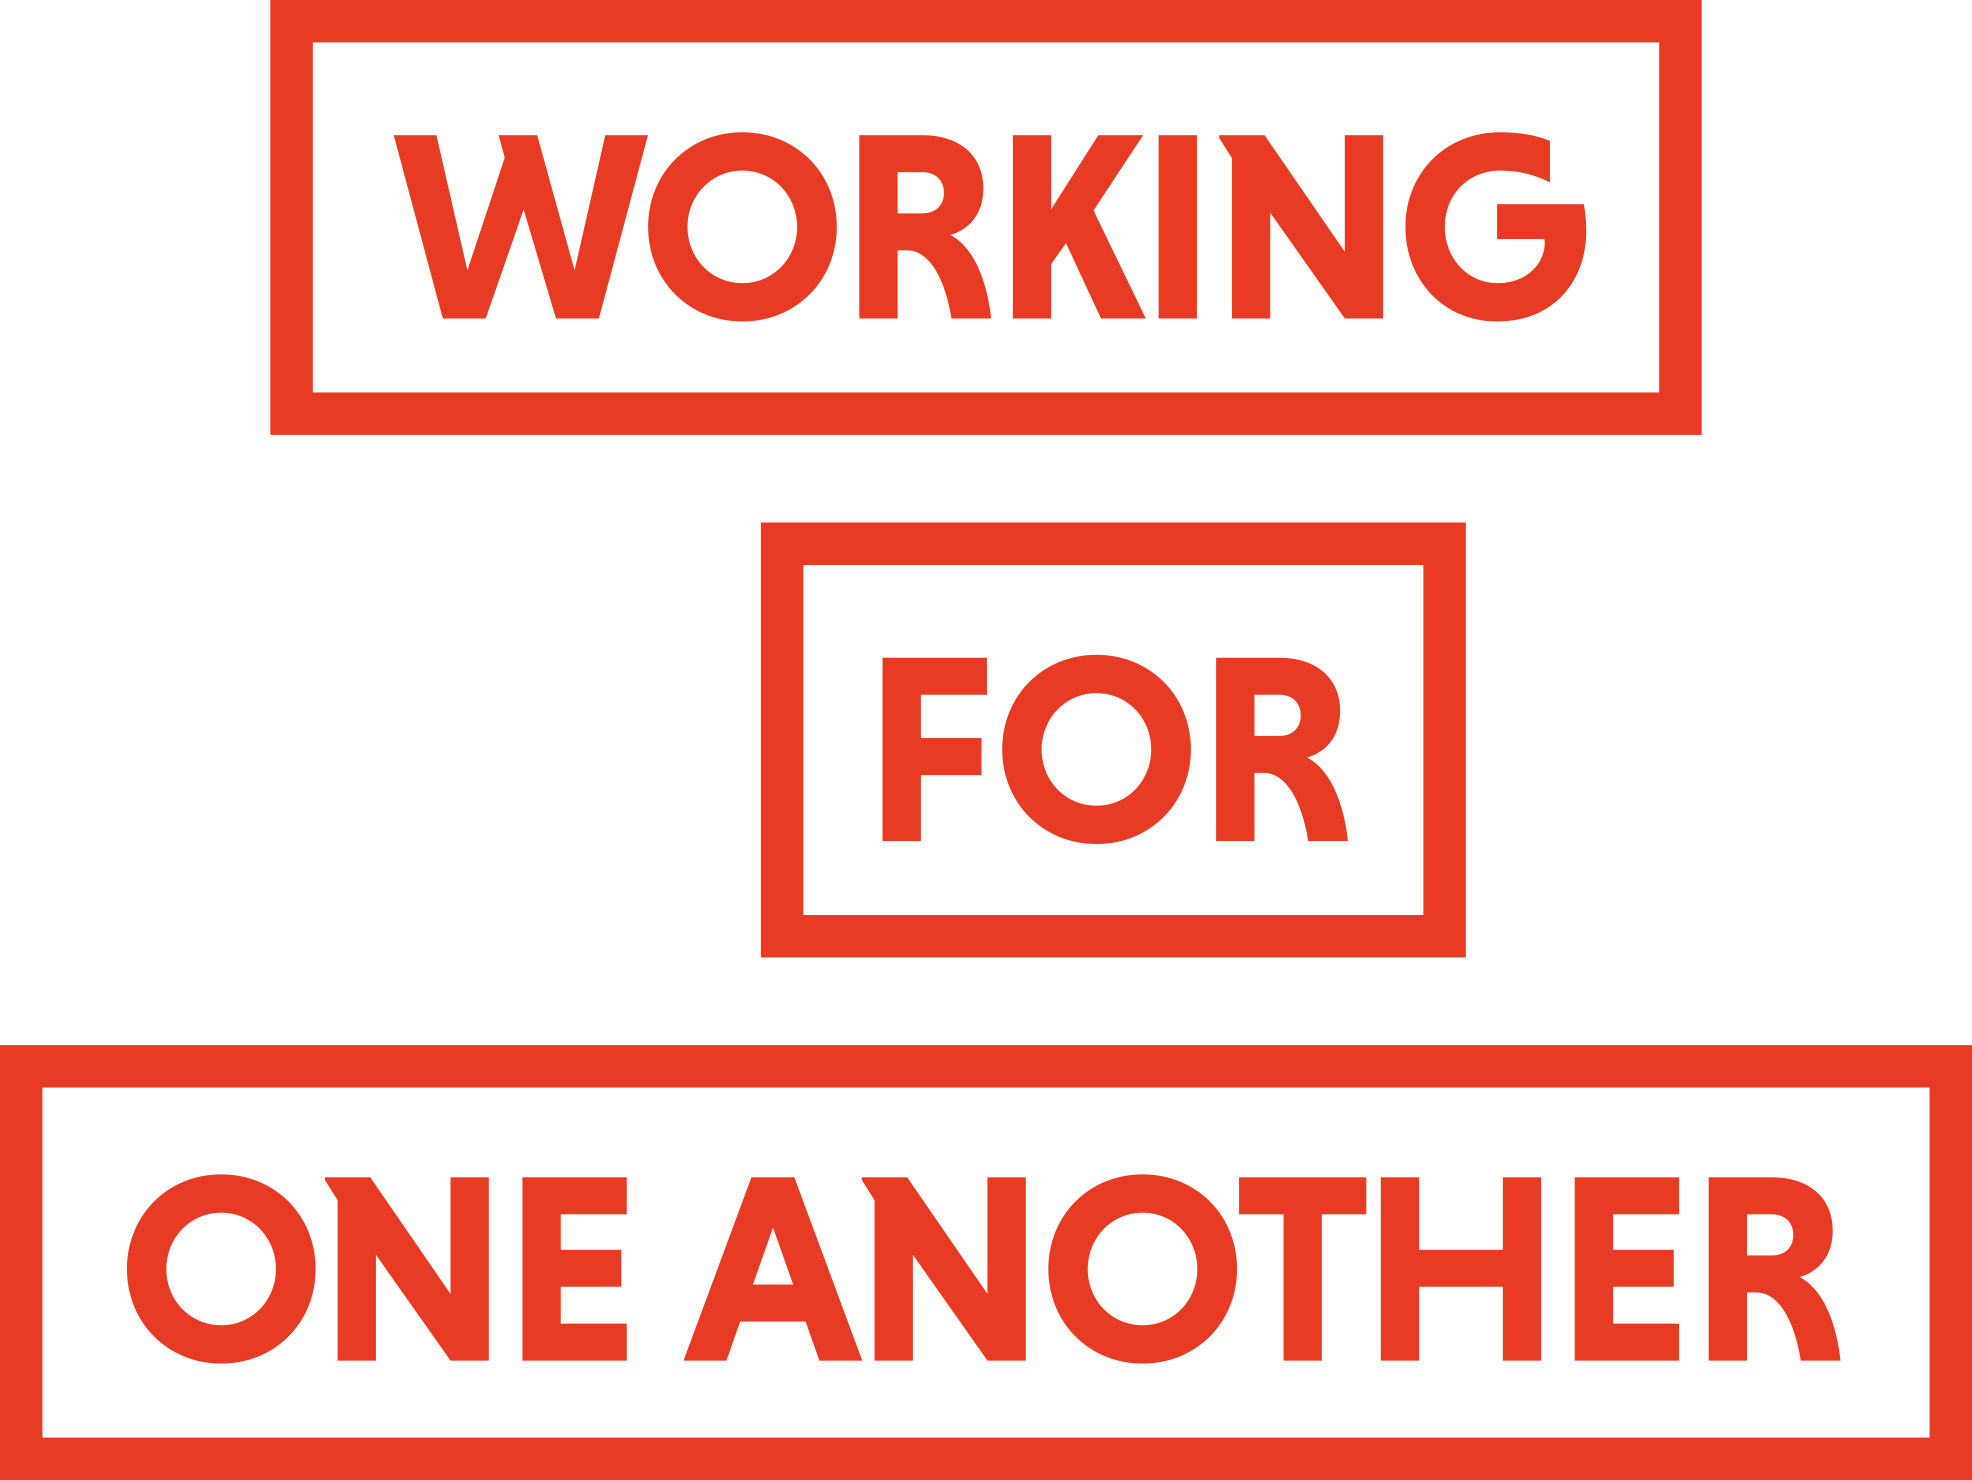 SAK's slogan Working for one another, vertical, jpg